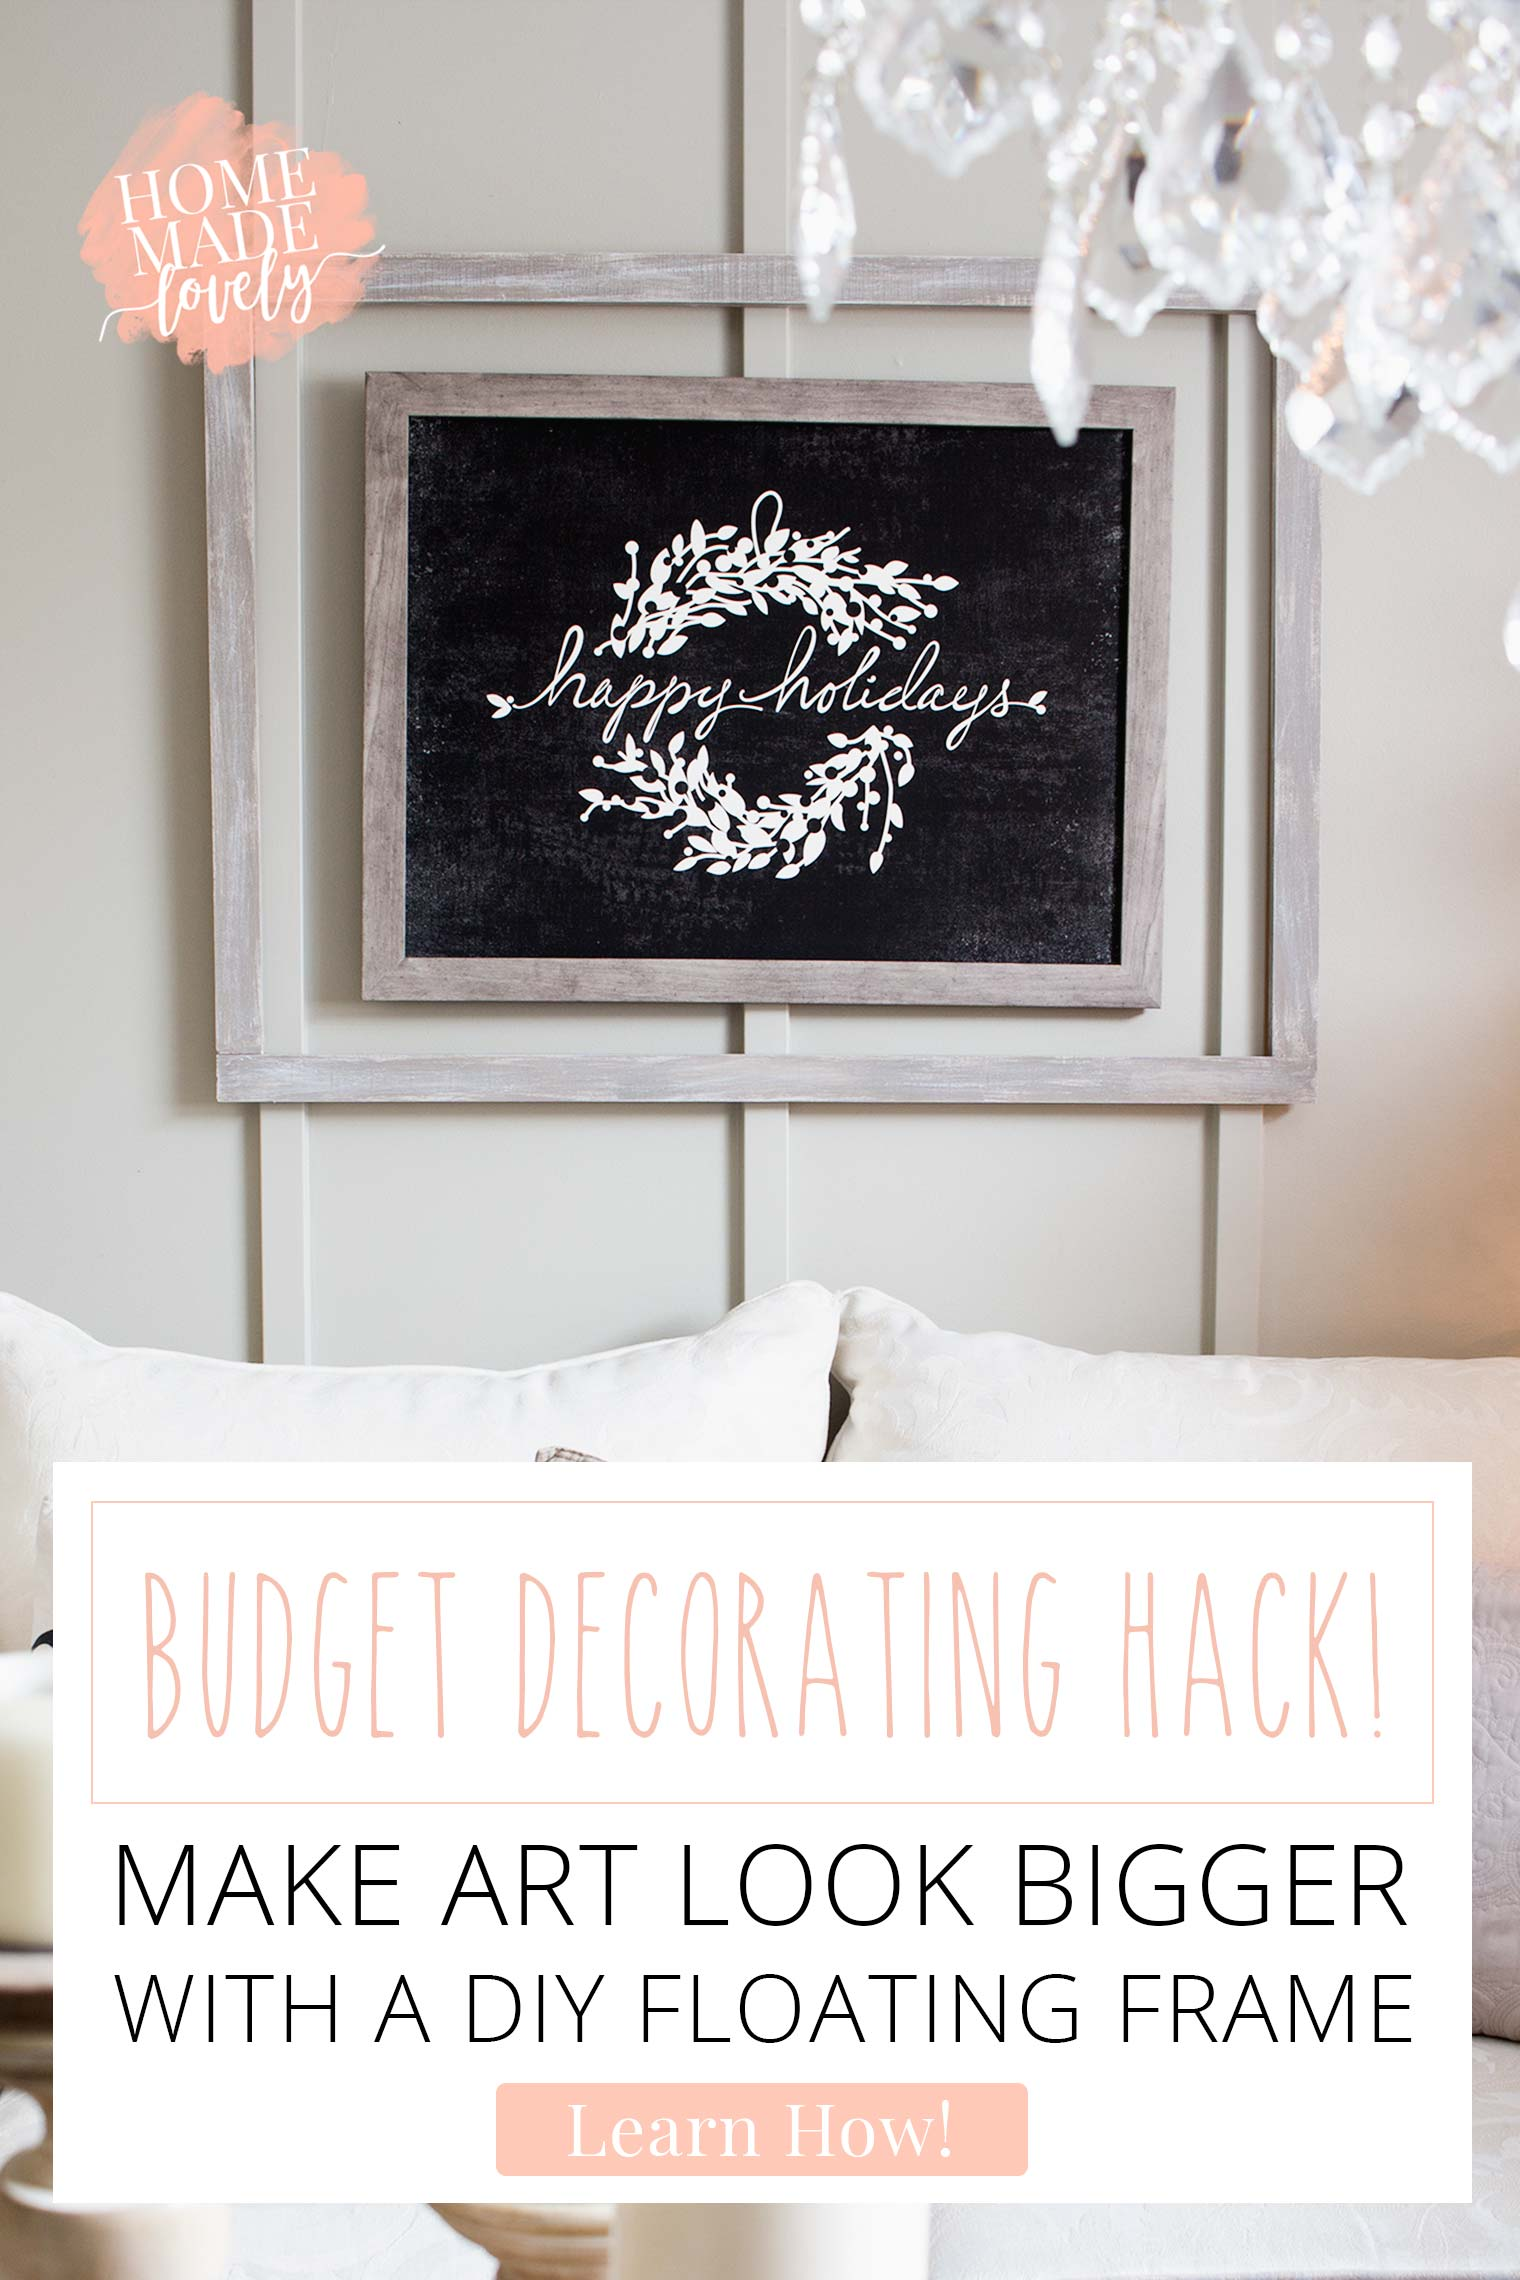 Make Art Look Bigger with a DIY Floating Frame